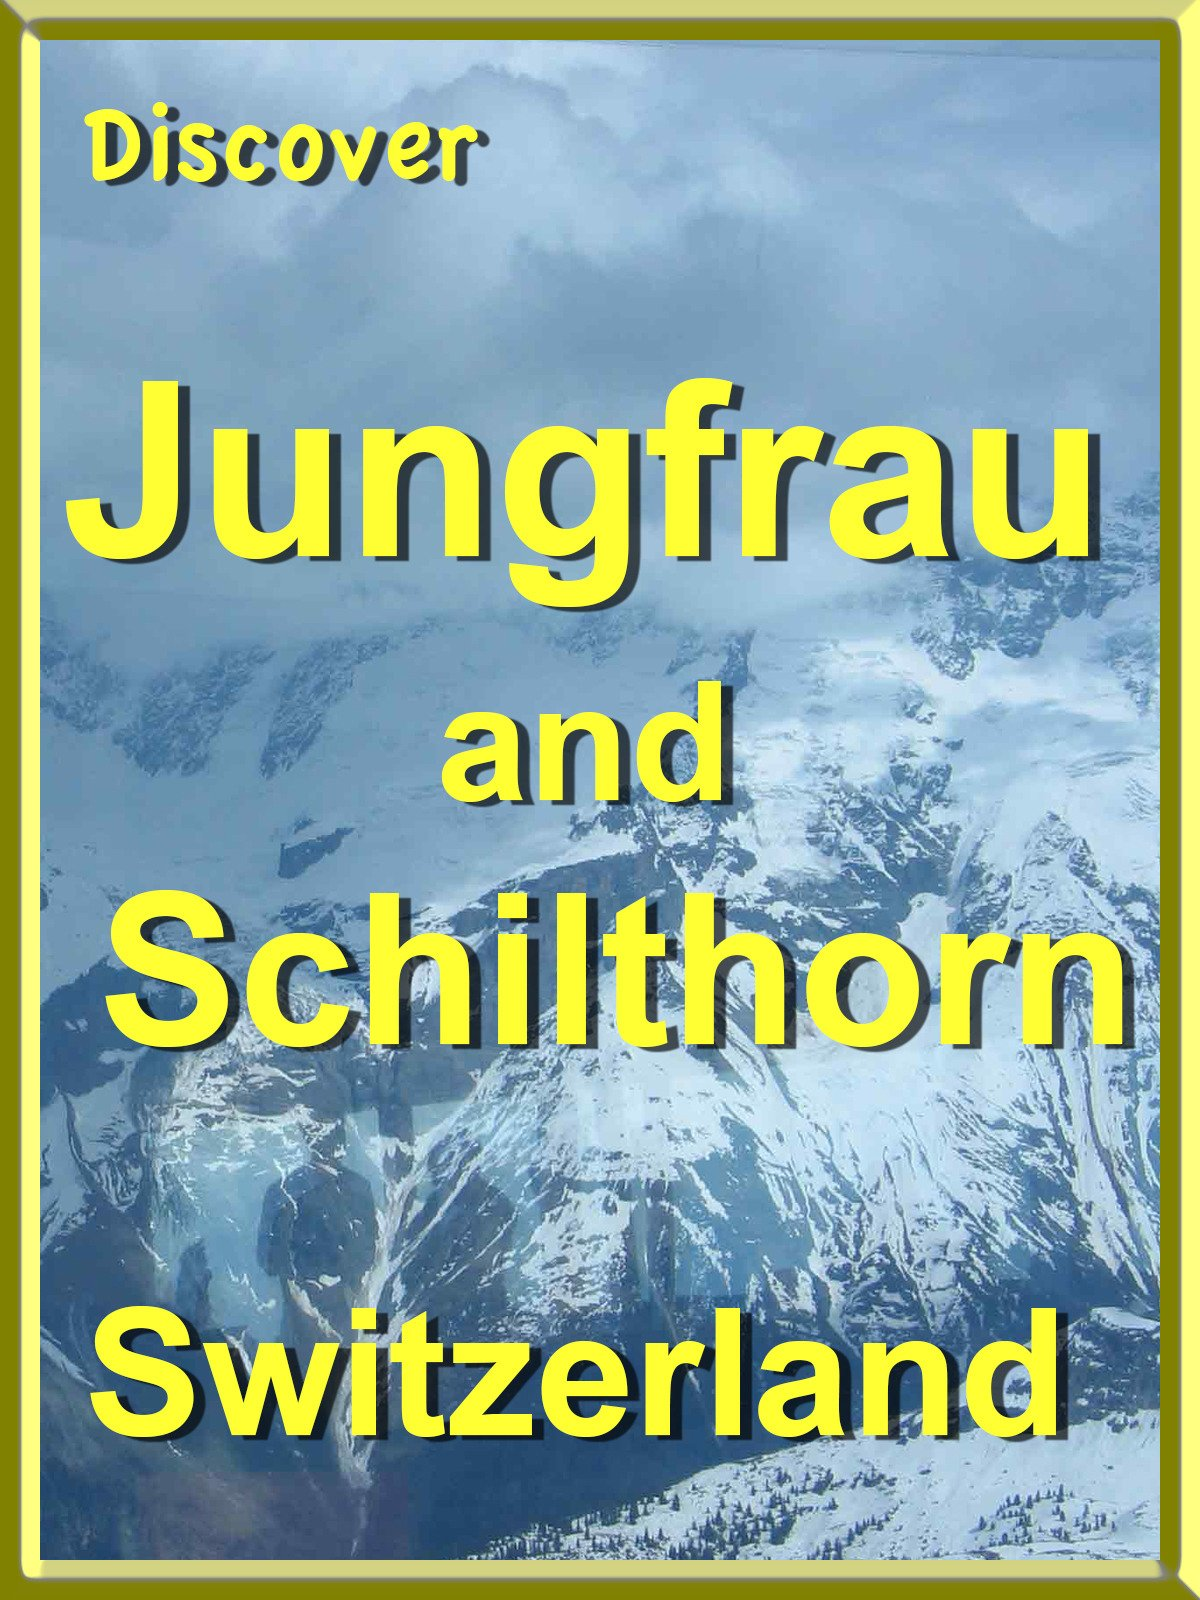 Discover Jungfrau and Schilthorn, Switzerland